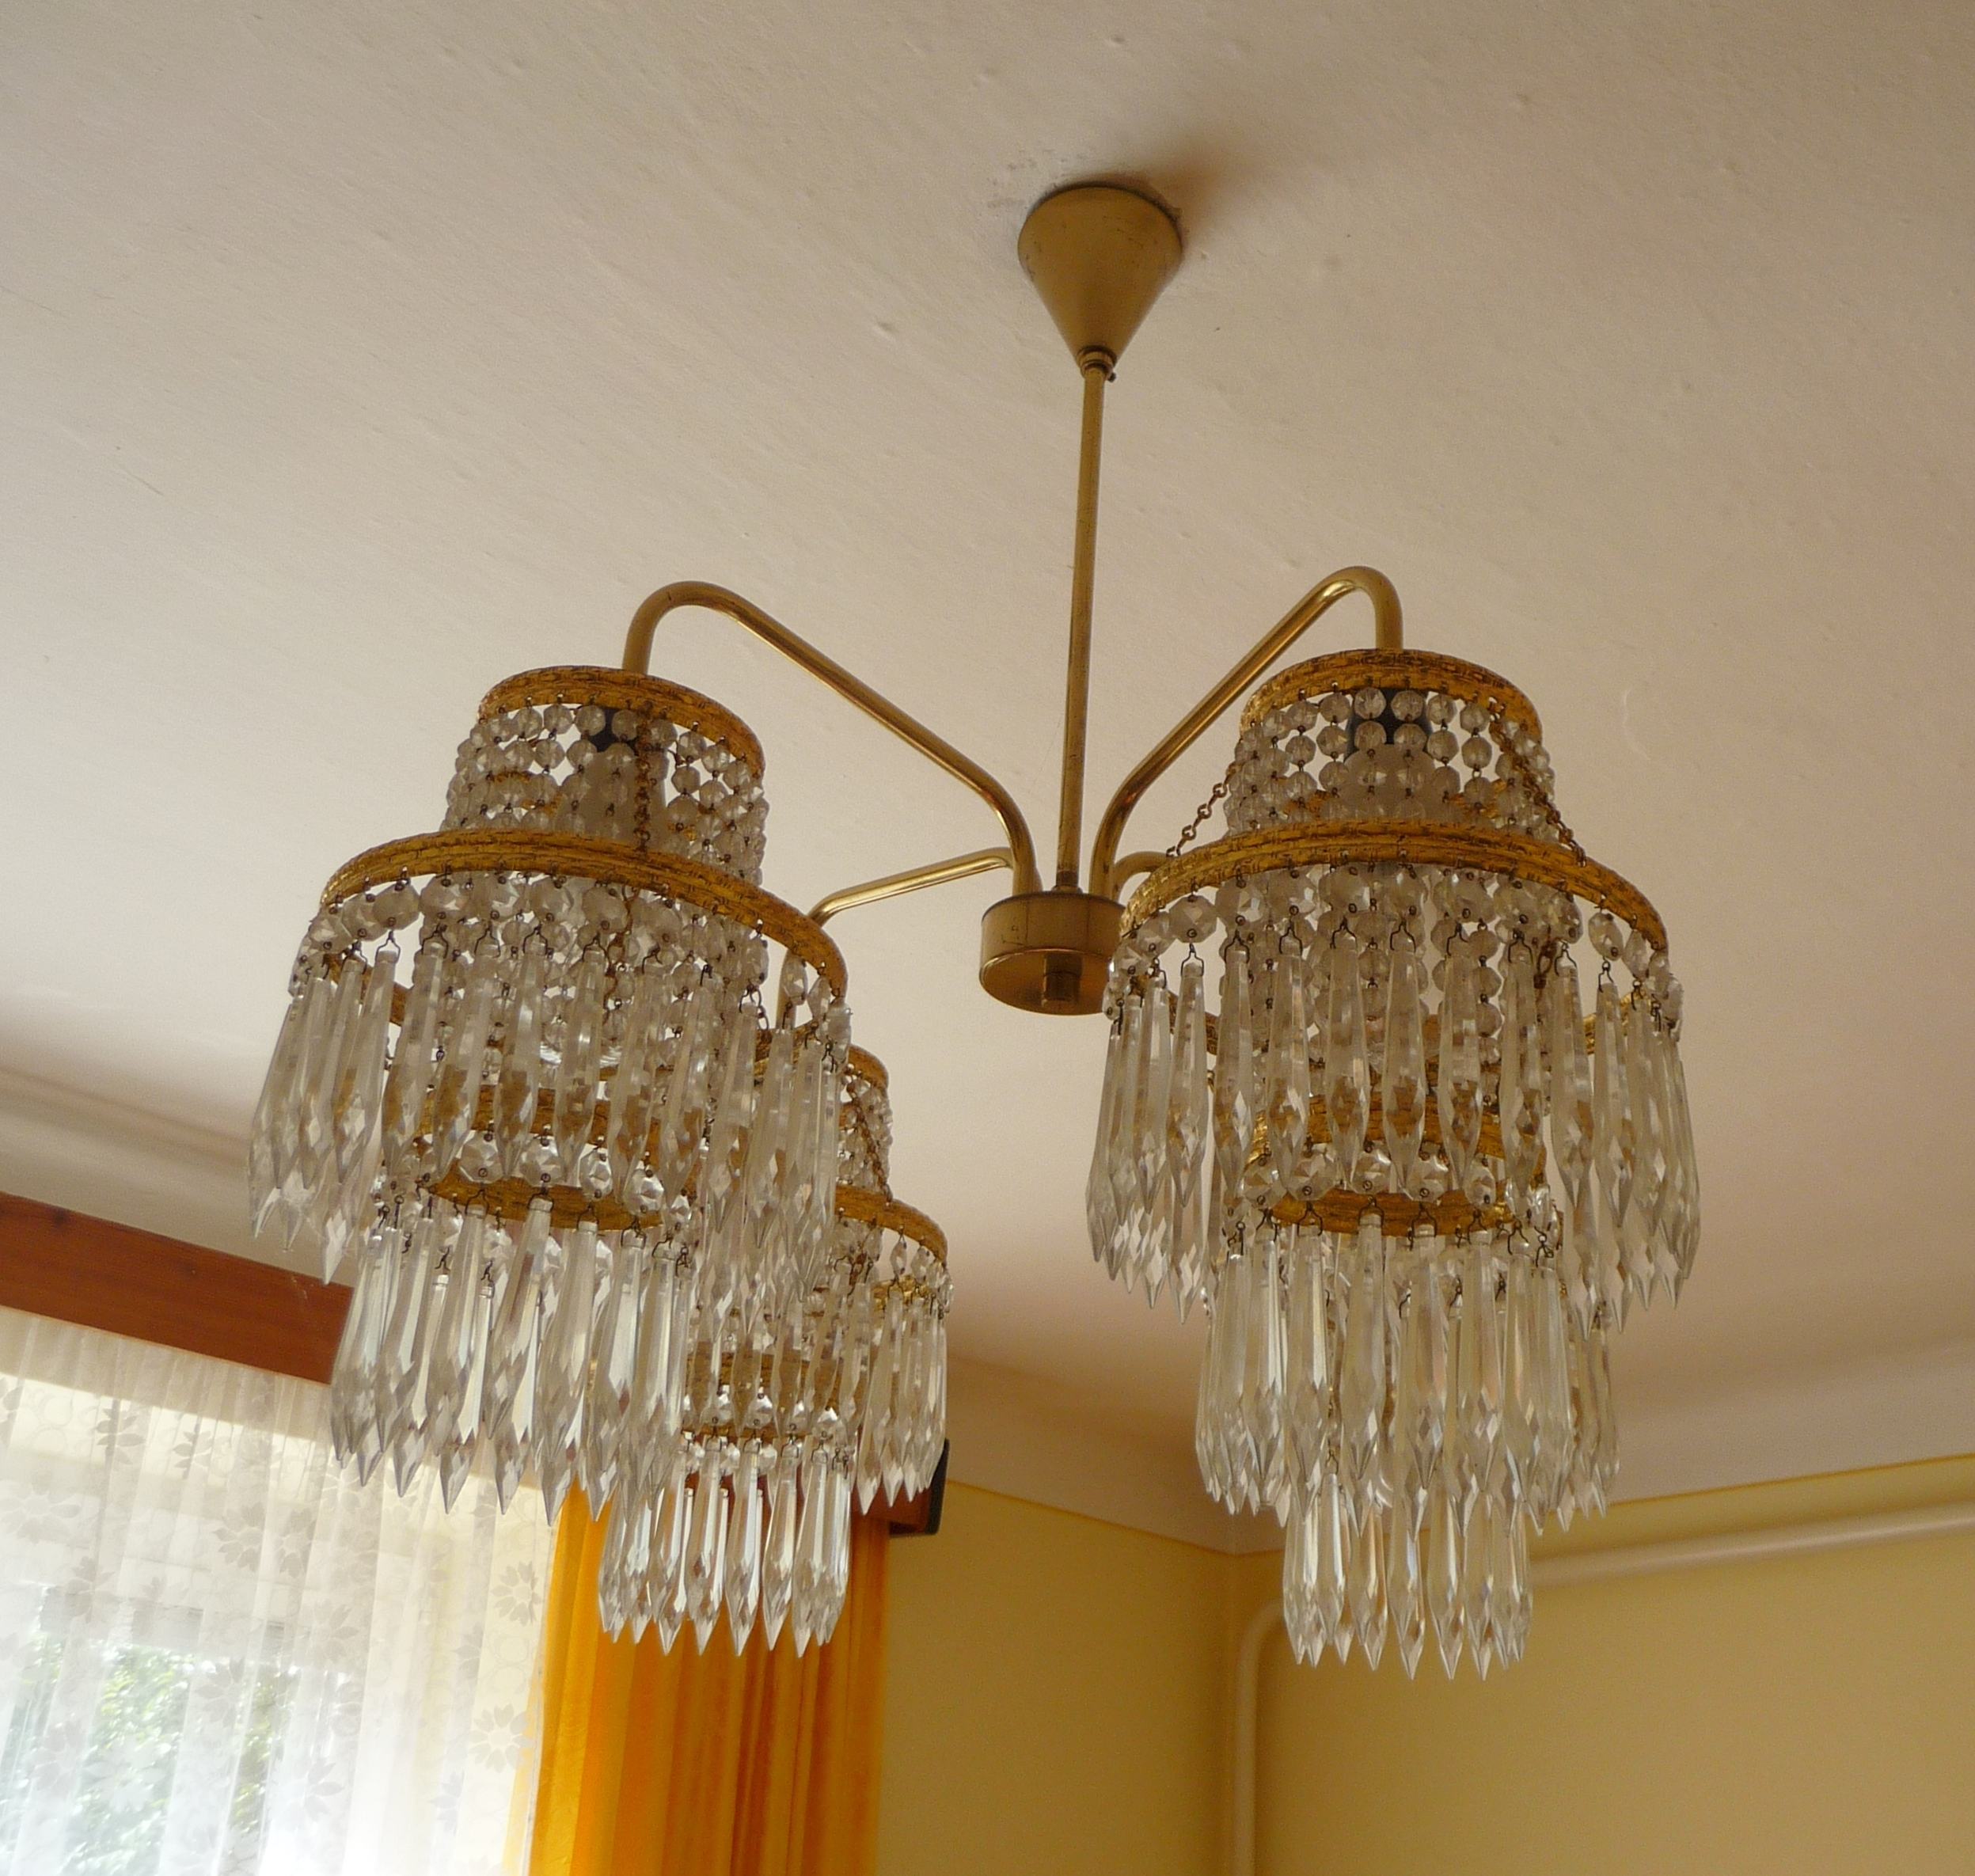 Best And Newest Lighting: Cut Glass Chandeliers With Modern Glass Chandelier Also Inside Coloured Glass Chandelier (View 2 of 20)